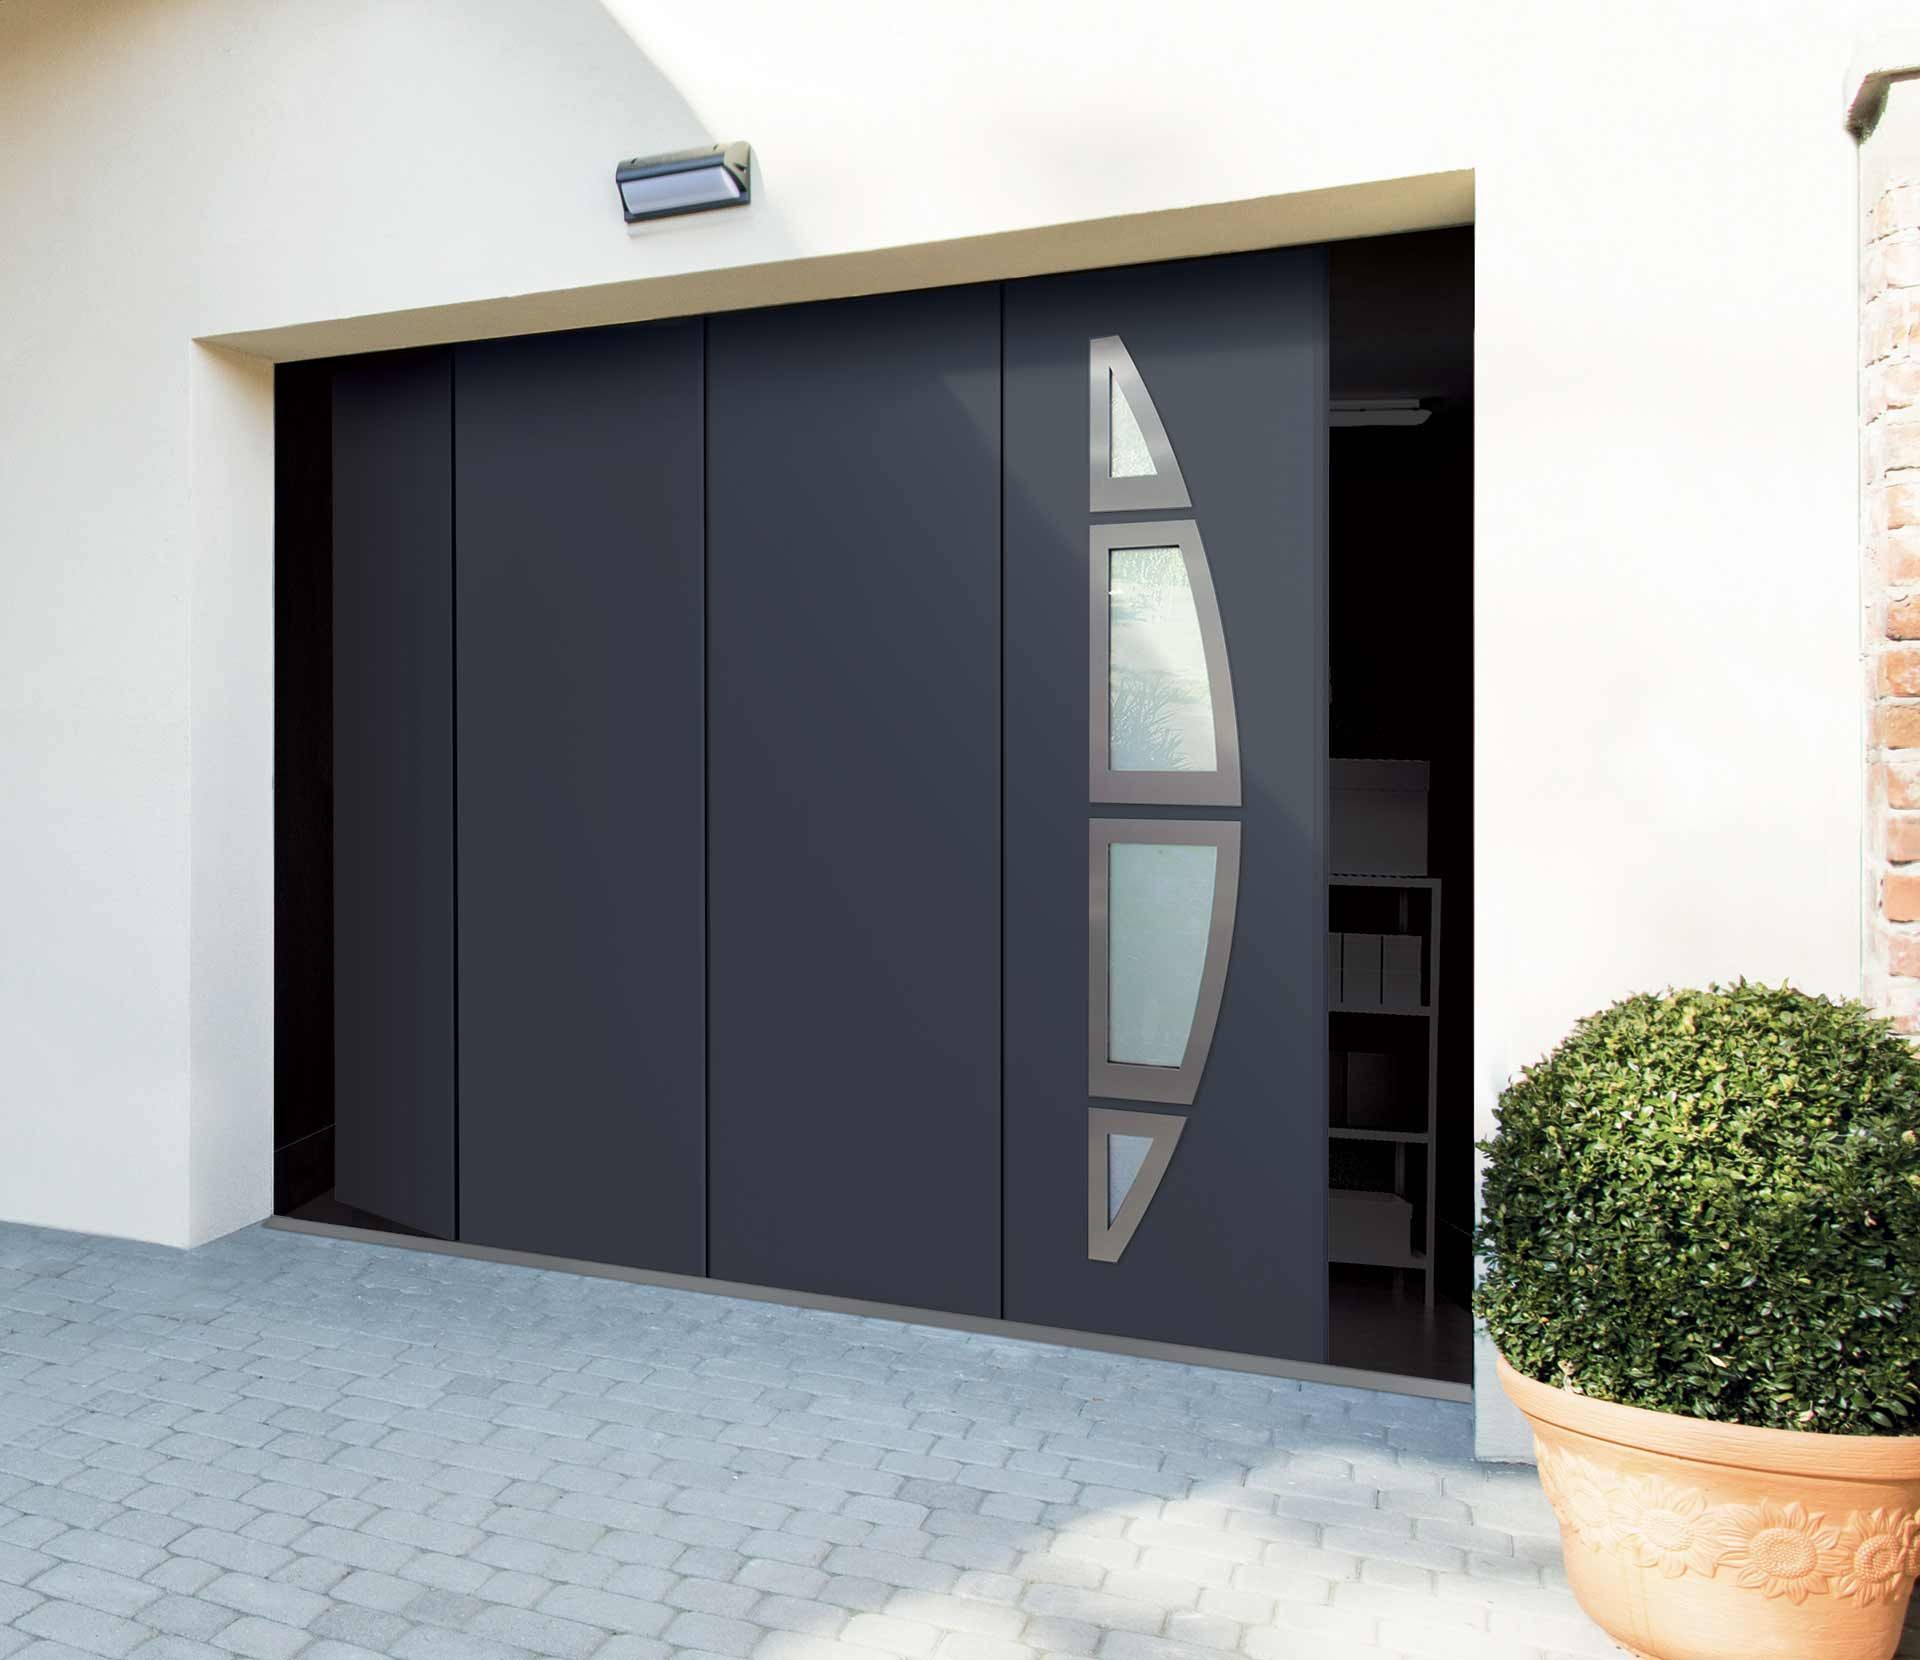 /uploads/porte_garage_laterale_gris_motifs_contemporains_inox_09_d8343da227.jpg